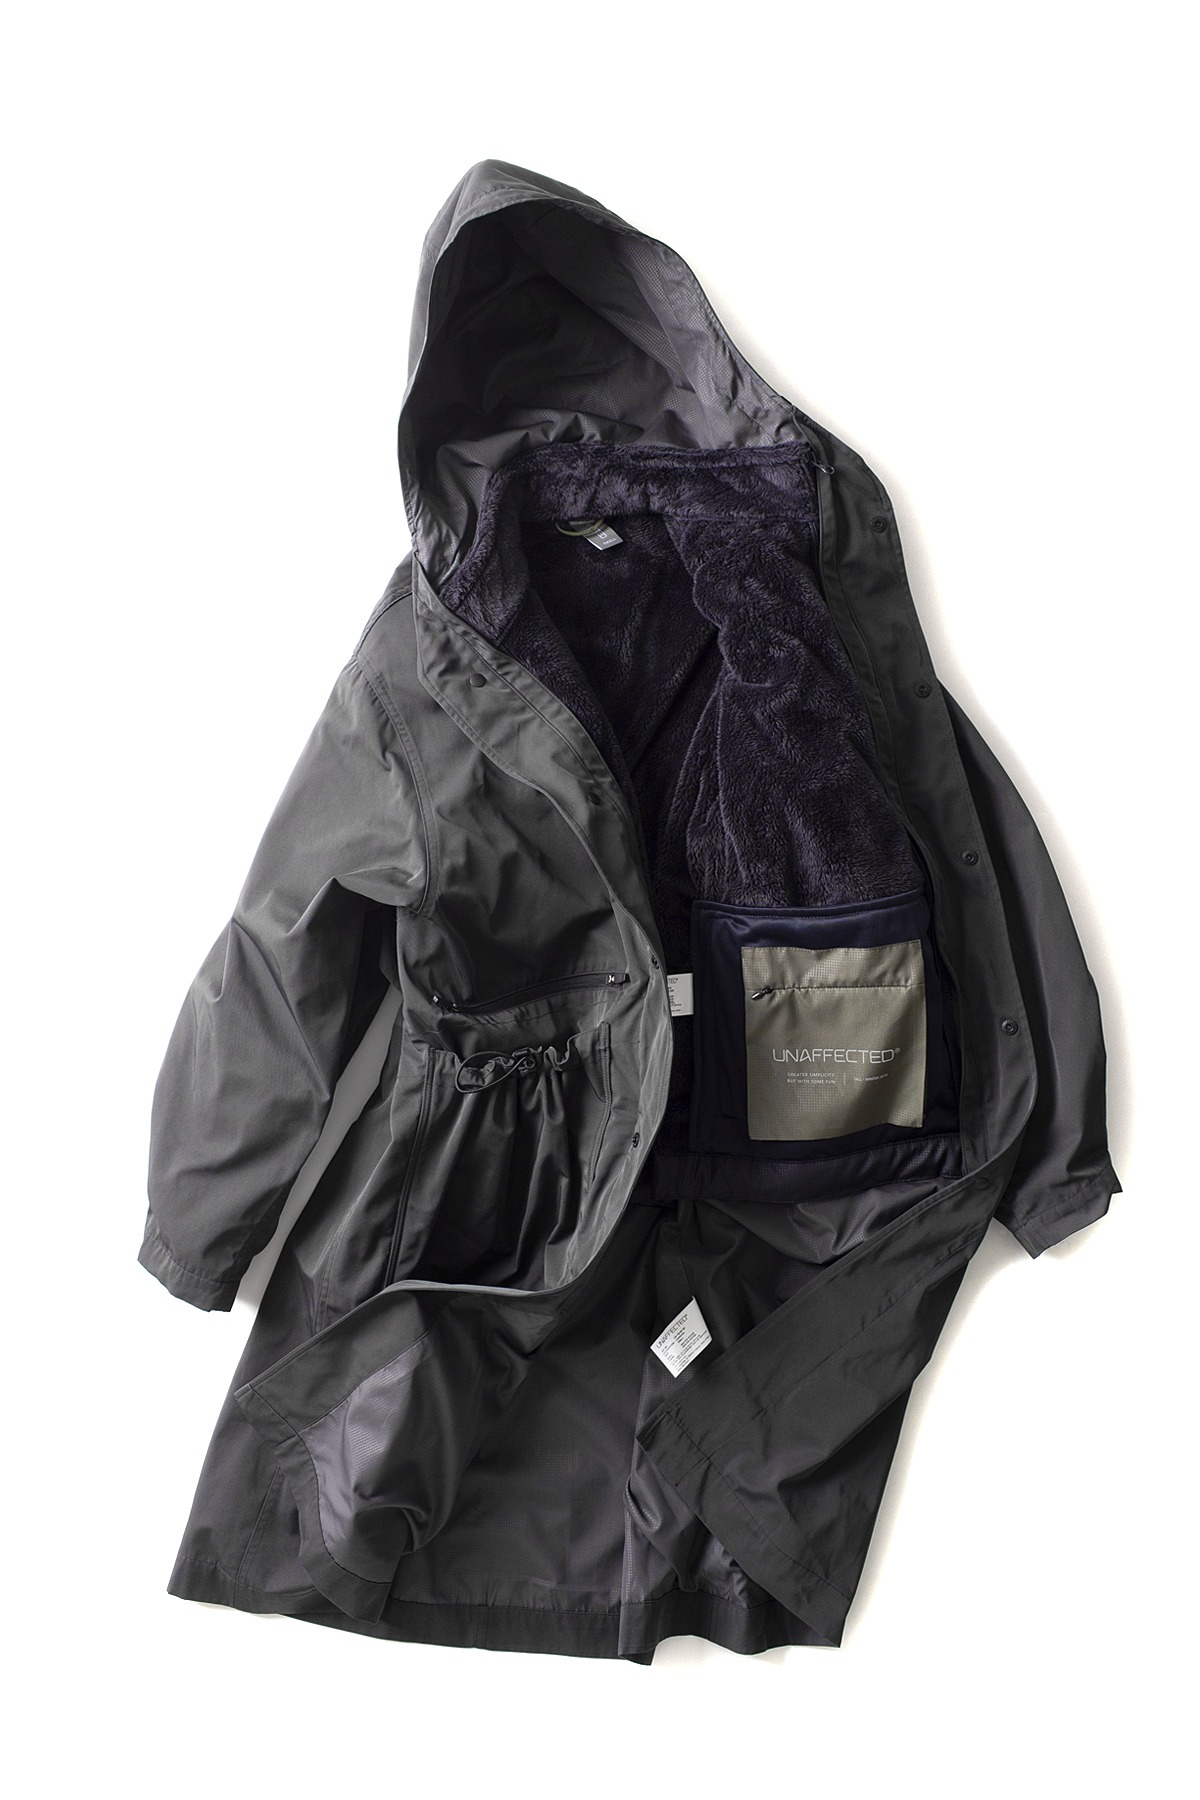 UNAFFECTED : Oversized Long Parka (Charcoal)